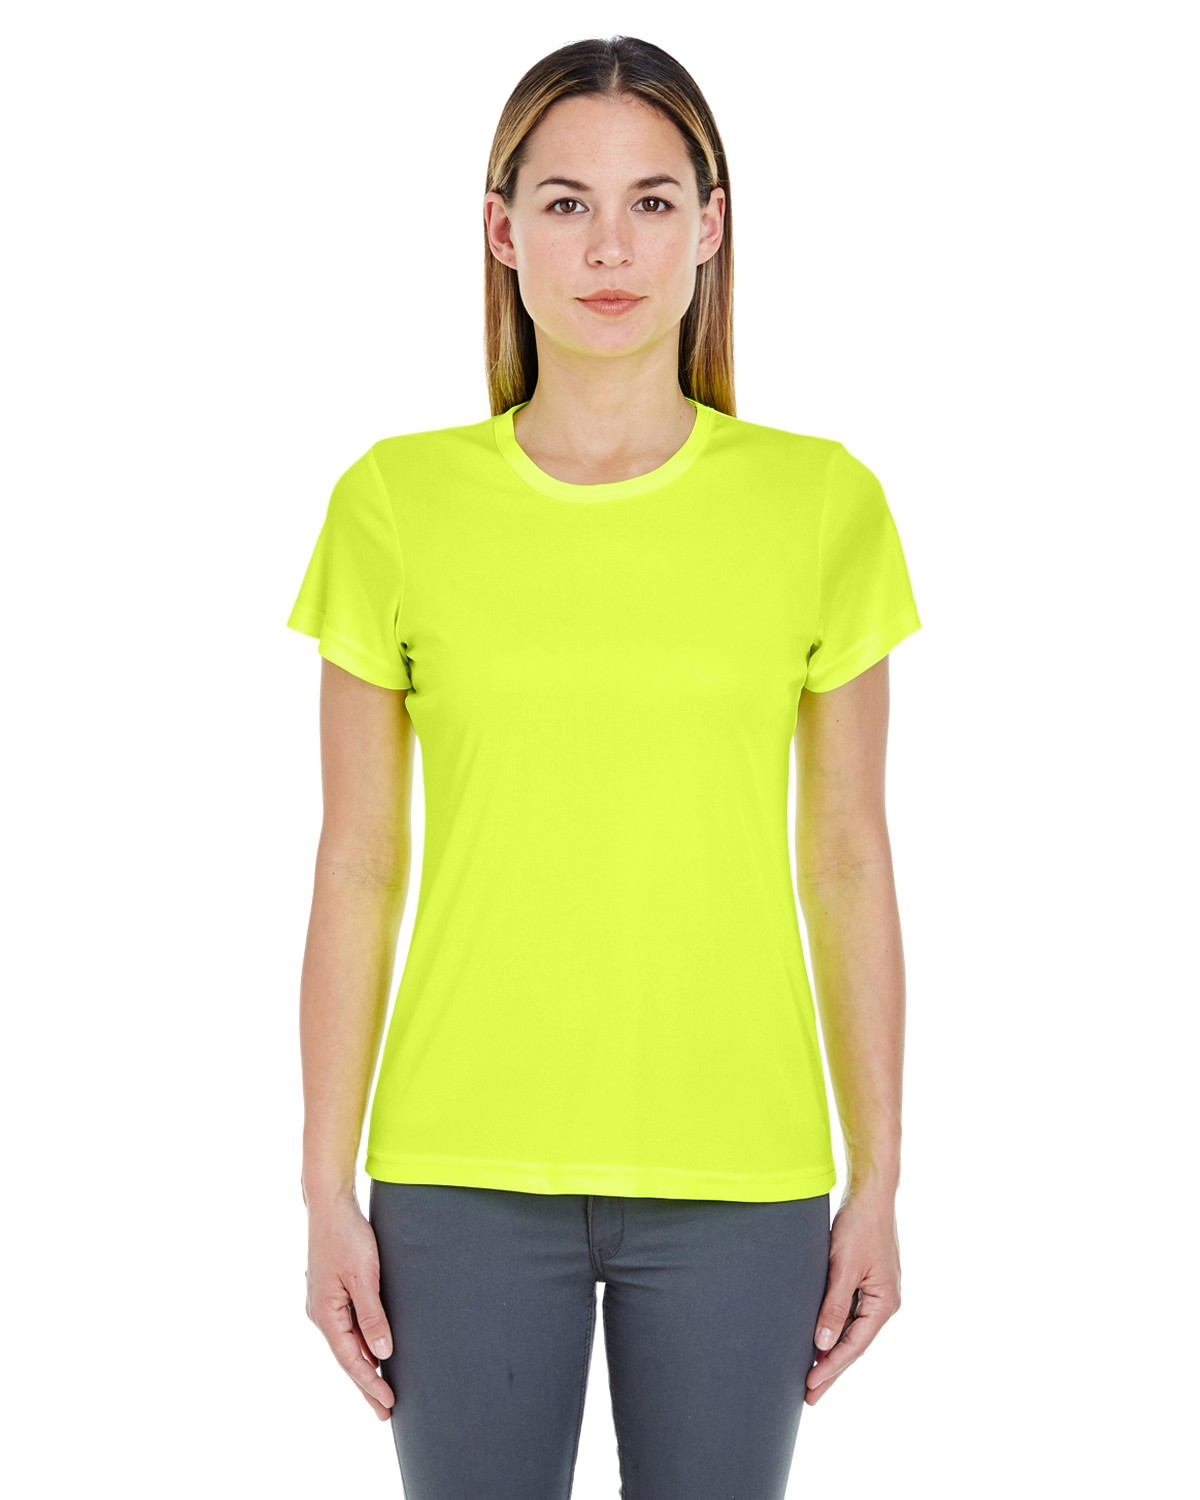 8420L UltraClub BRIGHT YELLOW